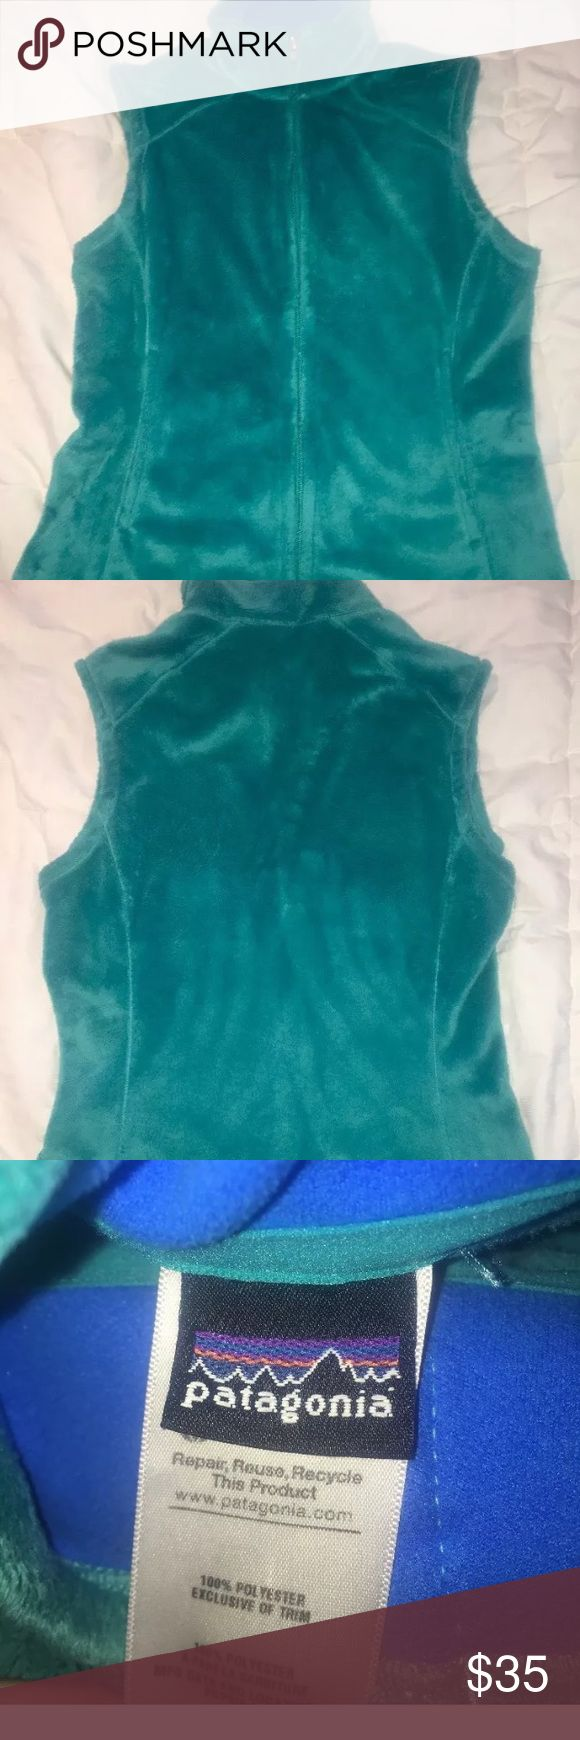 Sz s Patagonia furry soft fleece vest  Turquoise Excellent condition Sz small Patagonia furry soft fleece vest. Happy Turquoise/ teal color will make you smile every time you wear it! Patagonia Jackets & Coats Vests